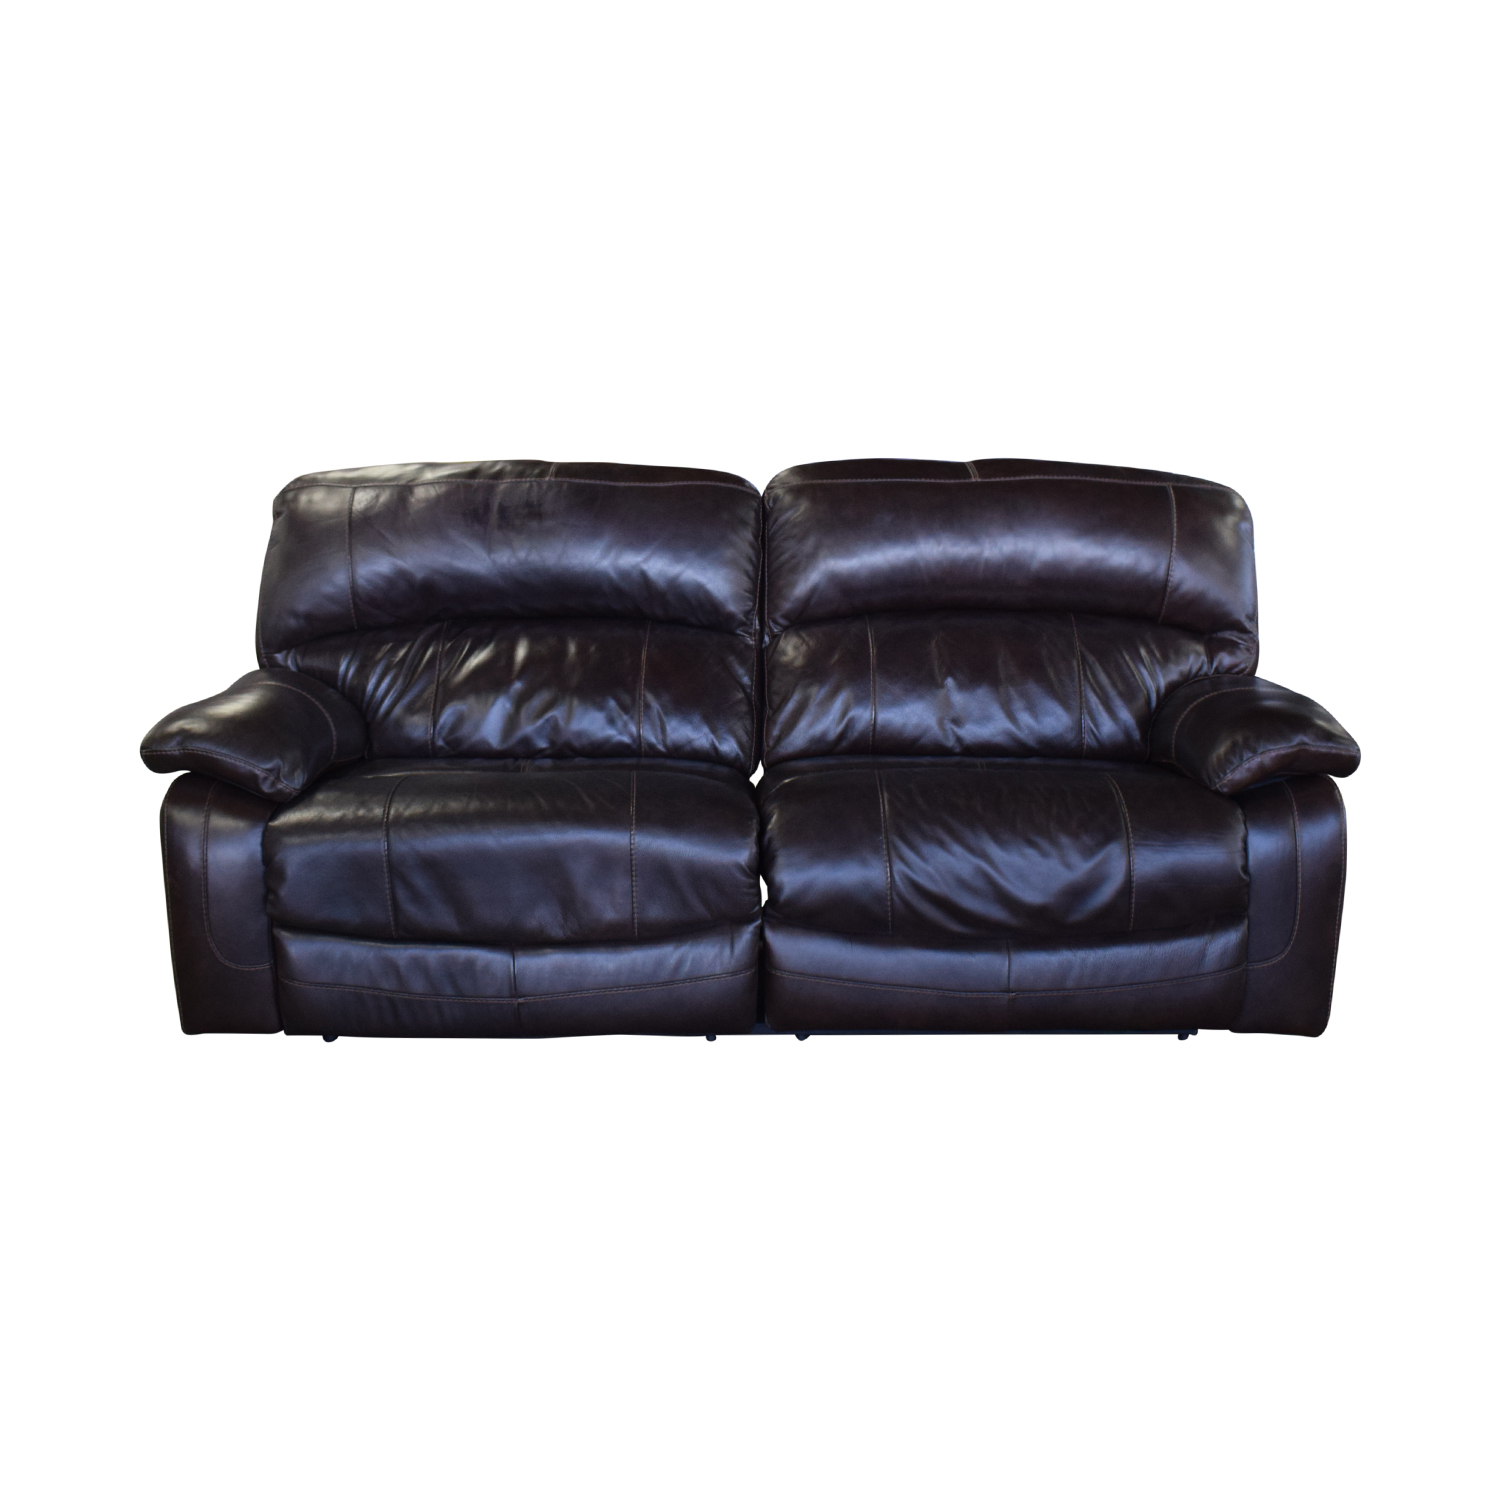 Ashley Furniture Ashley Furniture Sofa Recliner price